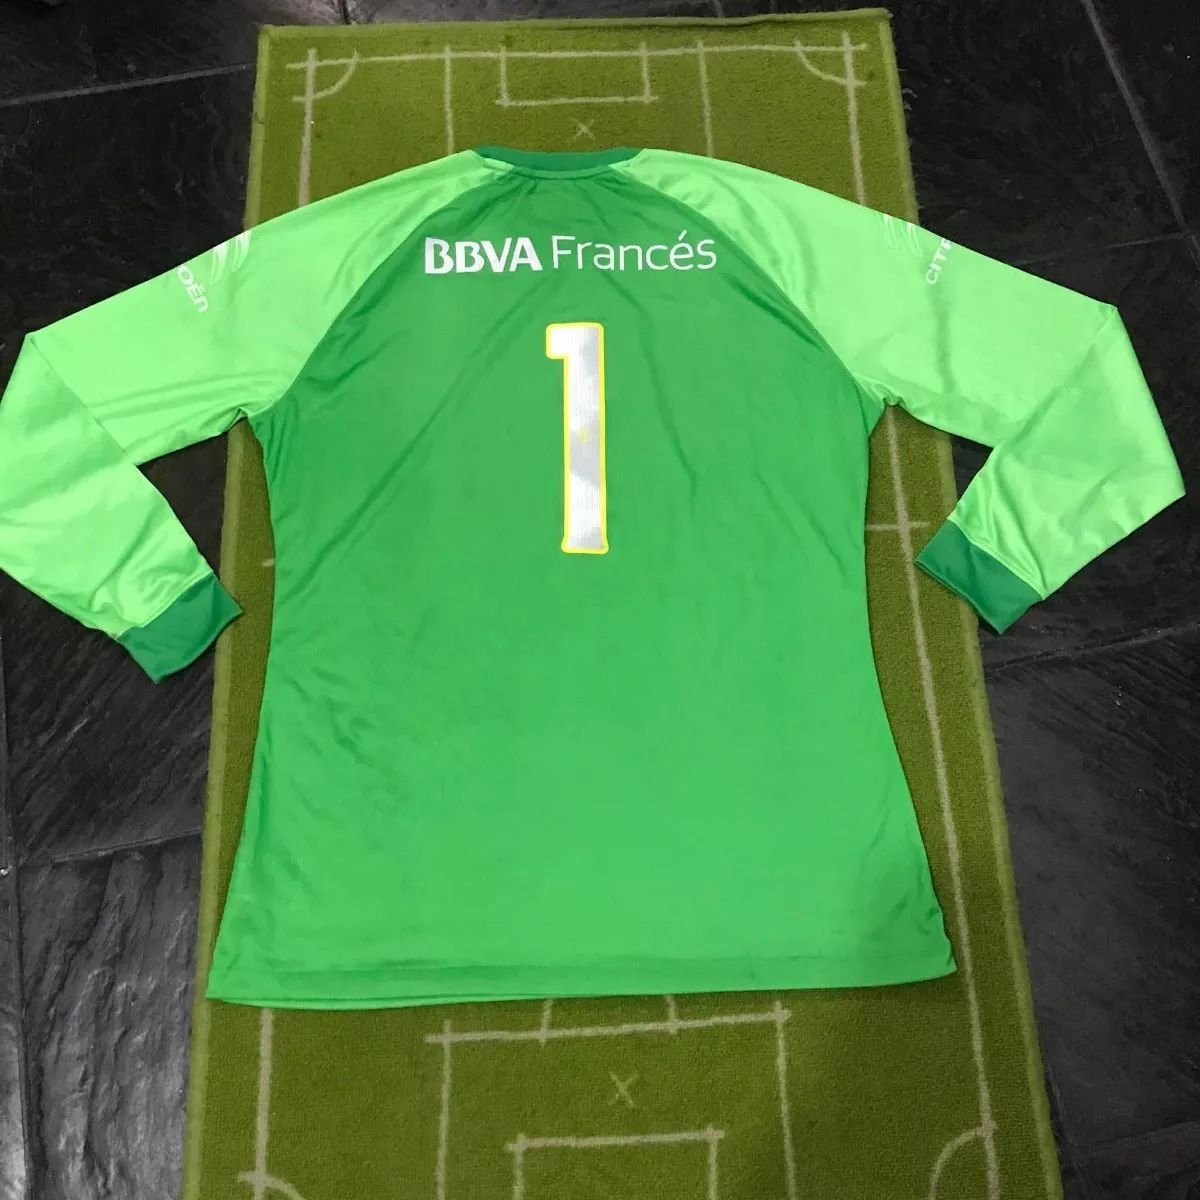 innovative design 930a8 a343f Boca Juniors Goalkeeper fotbollströja 2014 - 2015. Sponsored ...